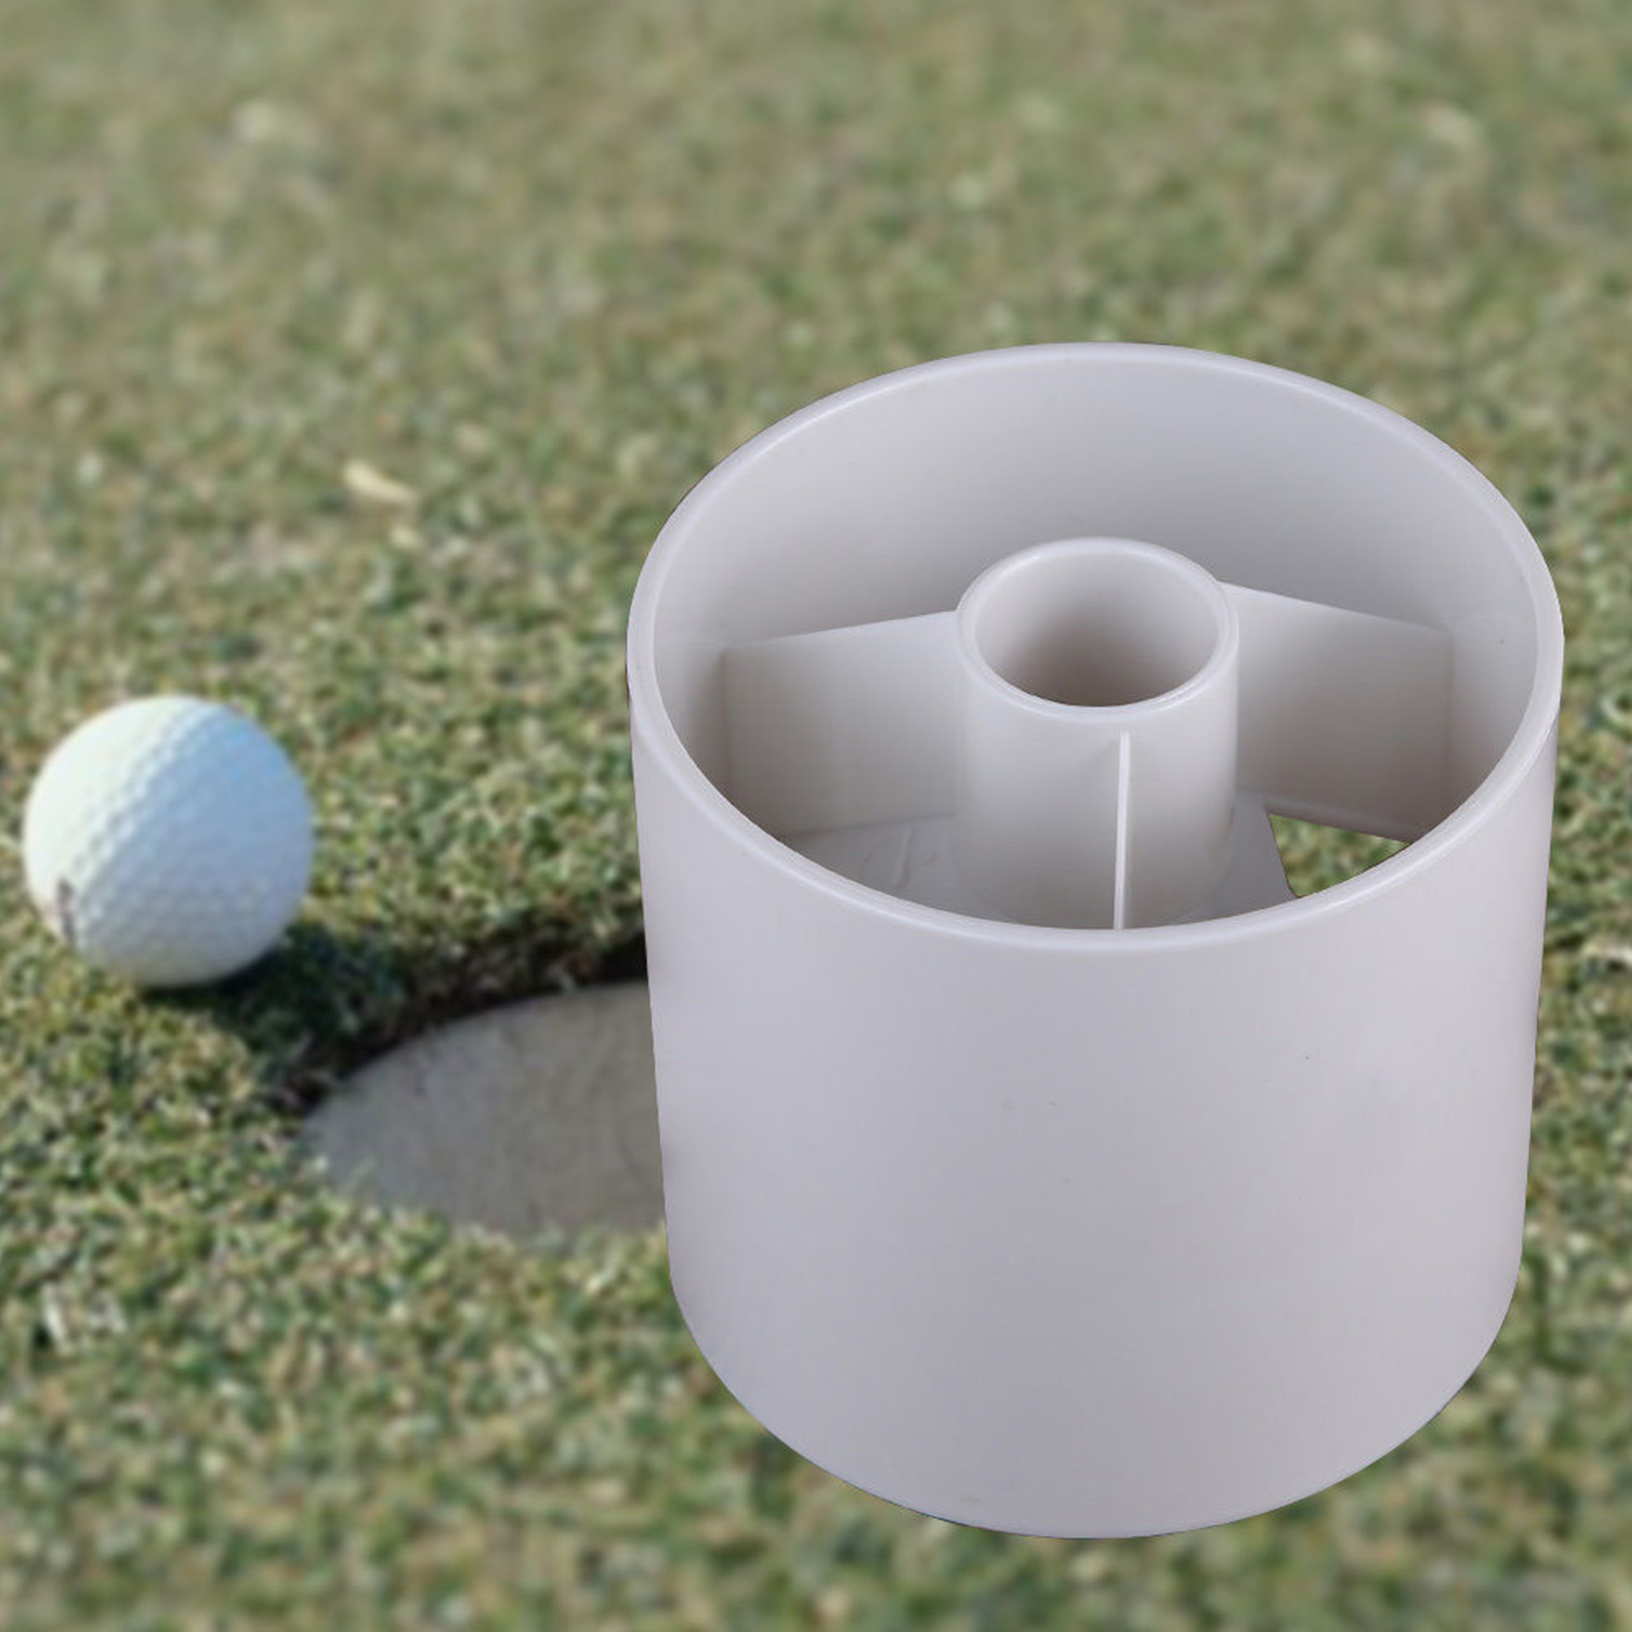 new backyard practice golf hole pole cup putting green flagstick